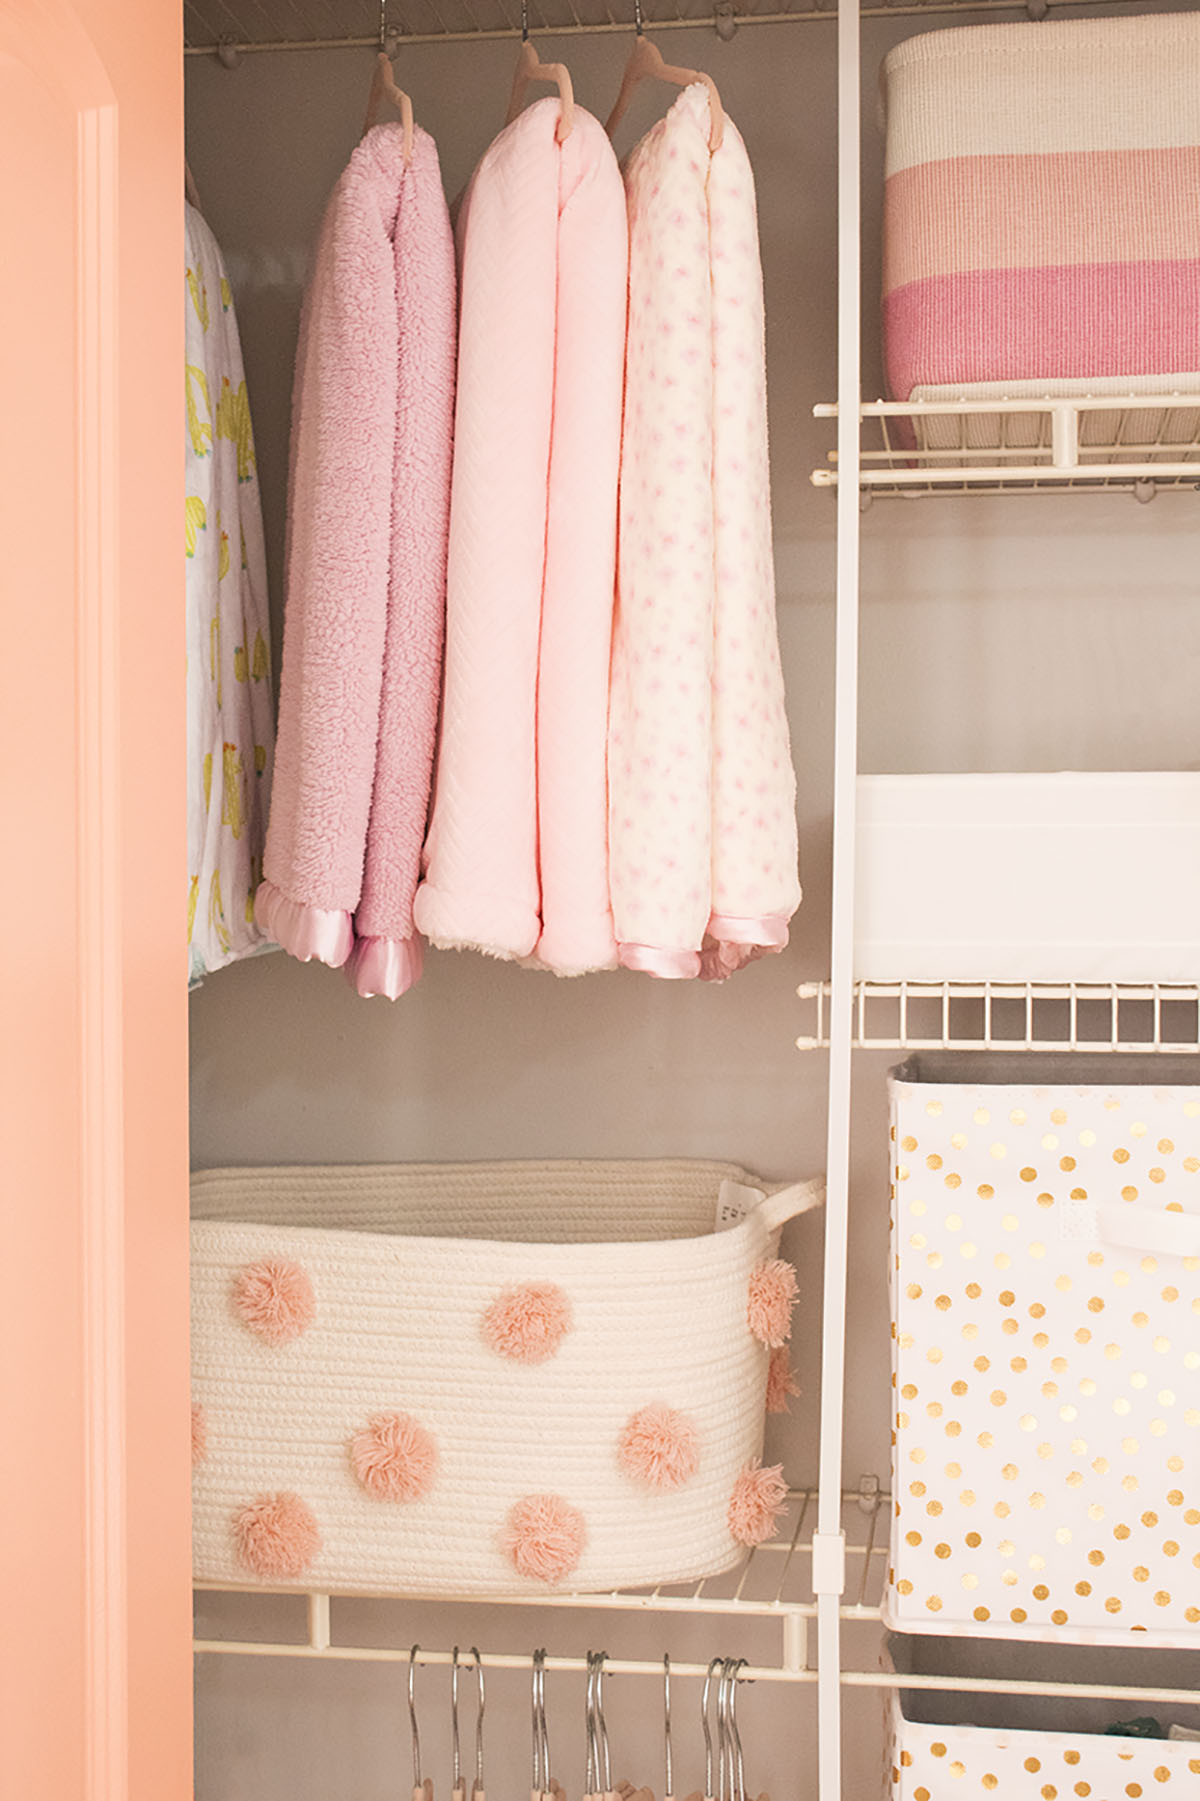 Looking for some nursery organization ideas? Check out this colorful and affordable nursery tour! From the closet to the dressers, I'll show you where to store all of baby's essentials. #nurseyorganizationideas #nurseryorganizationhacks #nurseryorganizationcloset